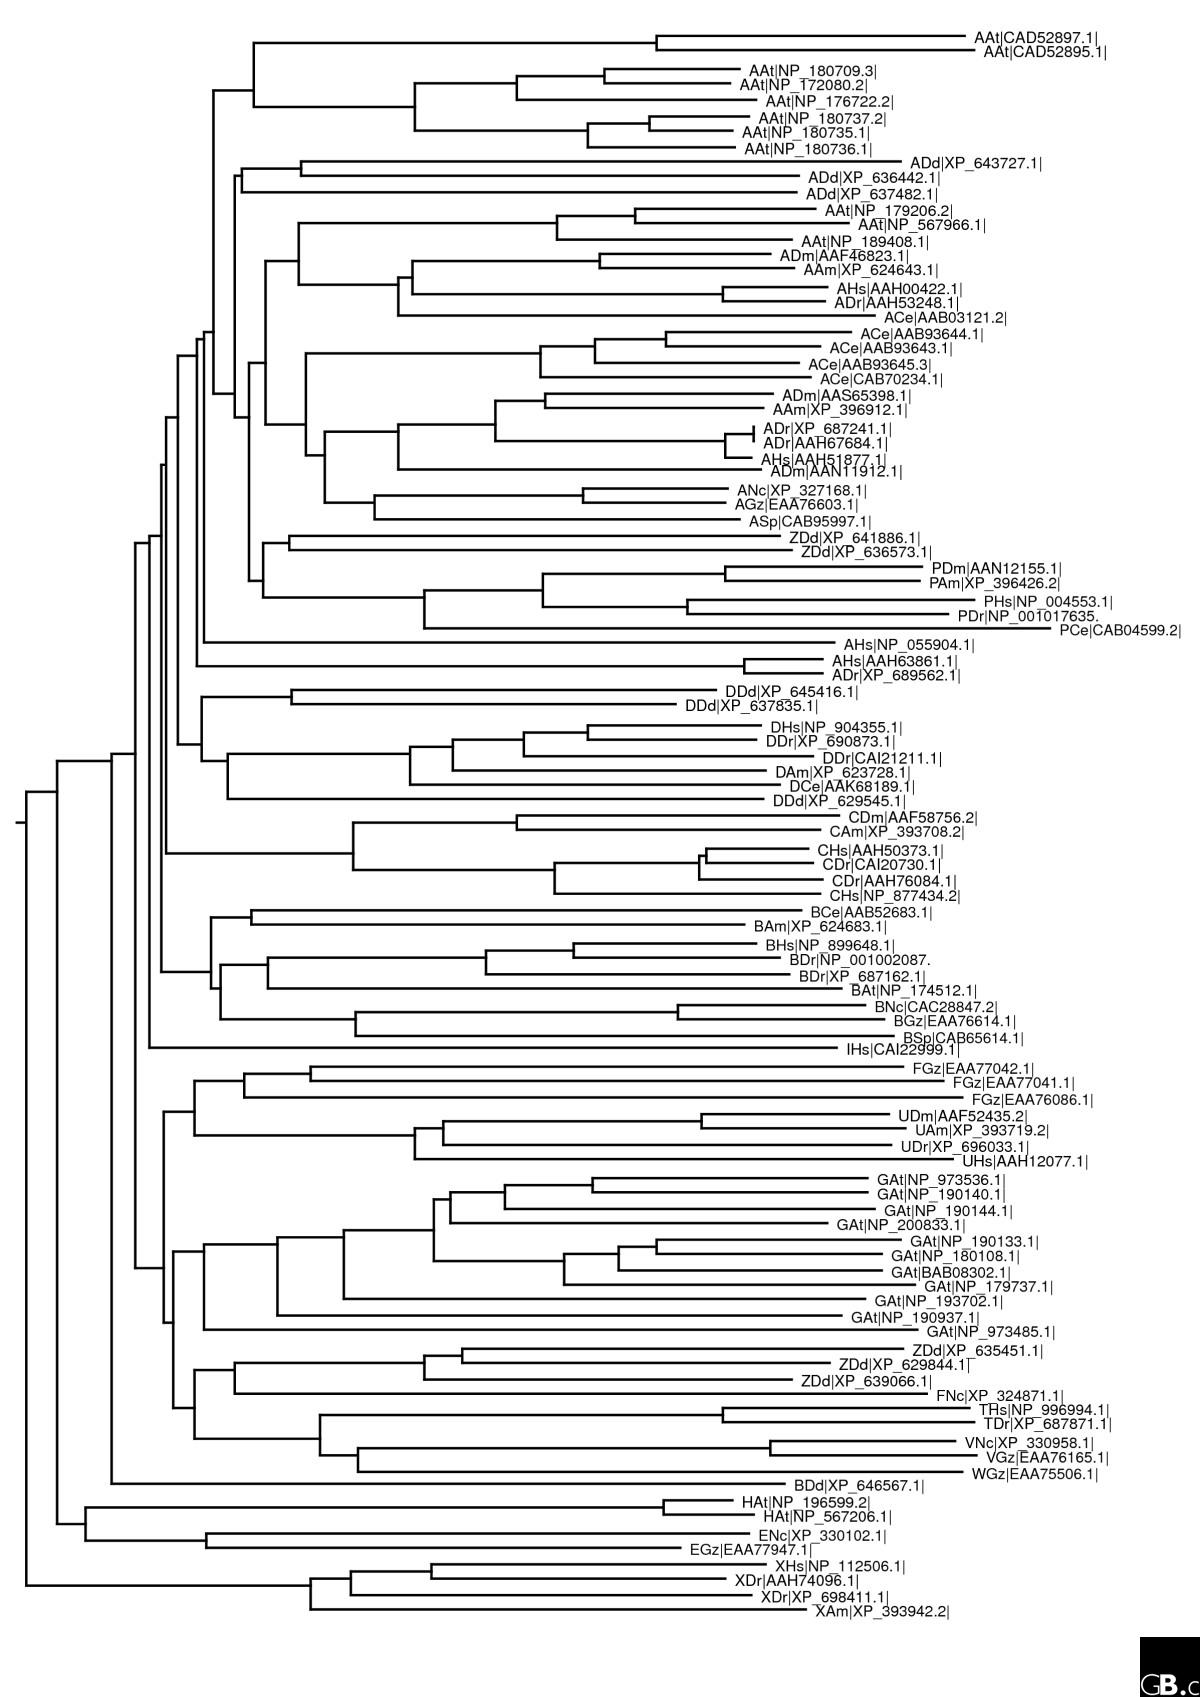 http://static-content.springer.com/image/art%3A10.1186%2Fgb-2007-8-3-209/MediaObjects/13059_2007_Article_1429_Fig2_HTML.jpg